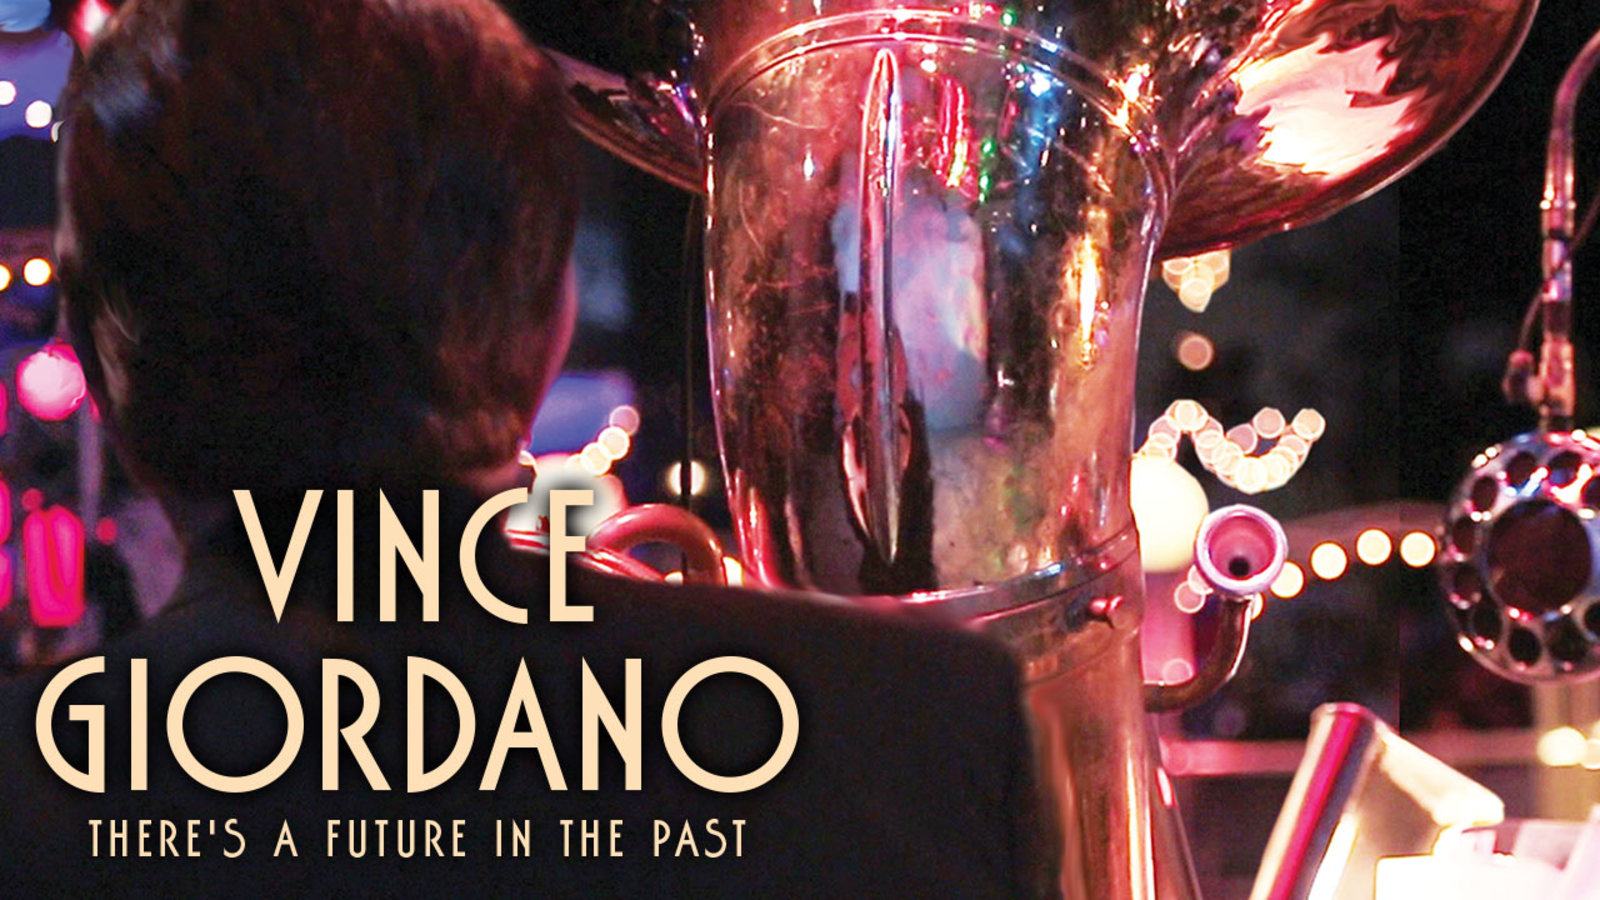 Vince Giordano: There's a Future in the Past - Portrait of a Jazz Artist